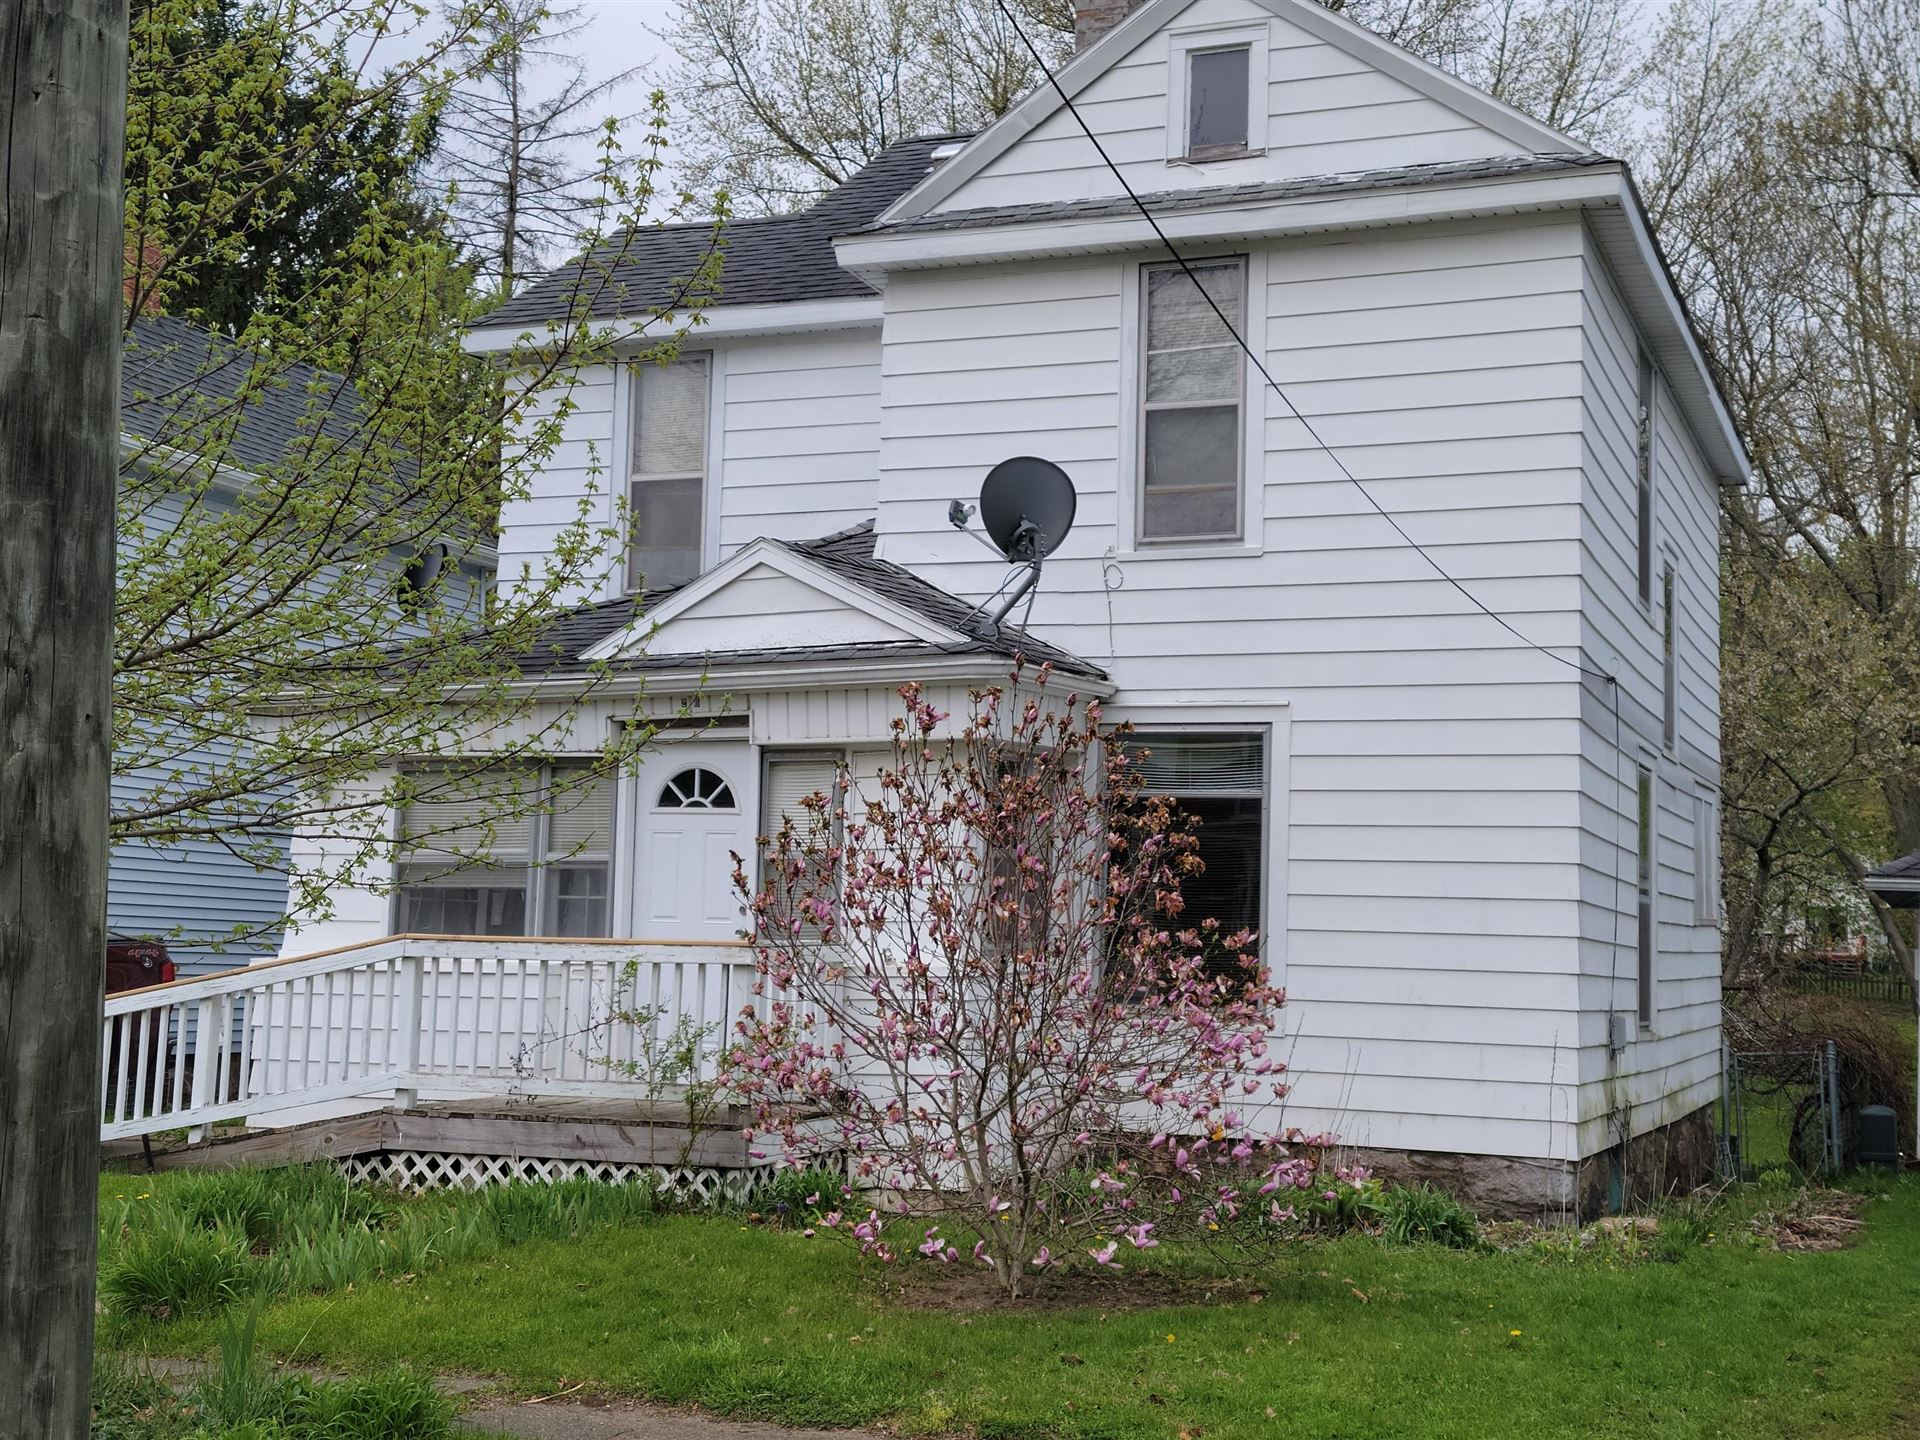 26 N Norwood Street, Hillsdale, MI 49242 - MLS#: 21015779